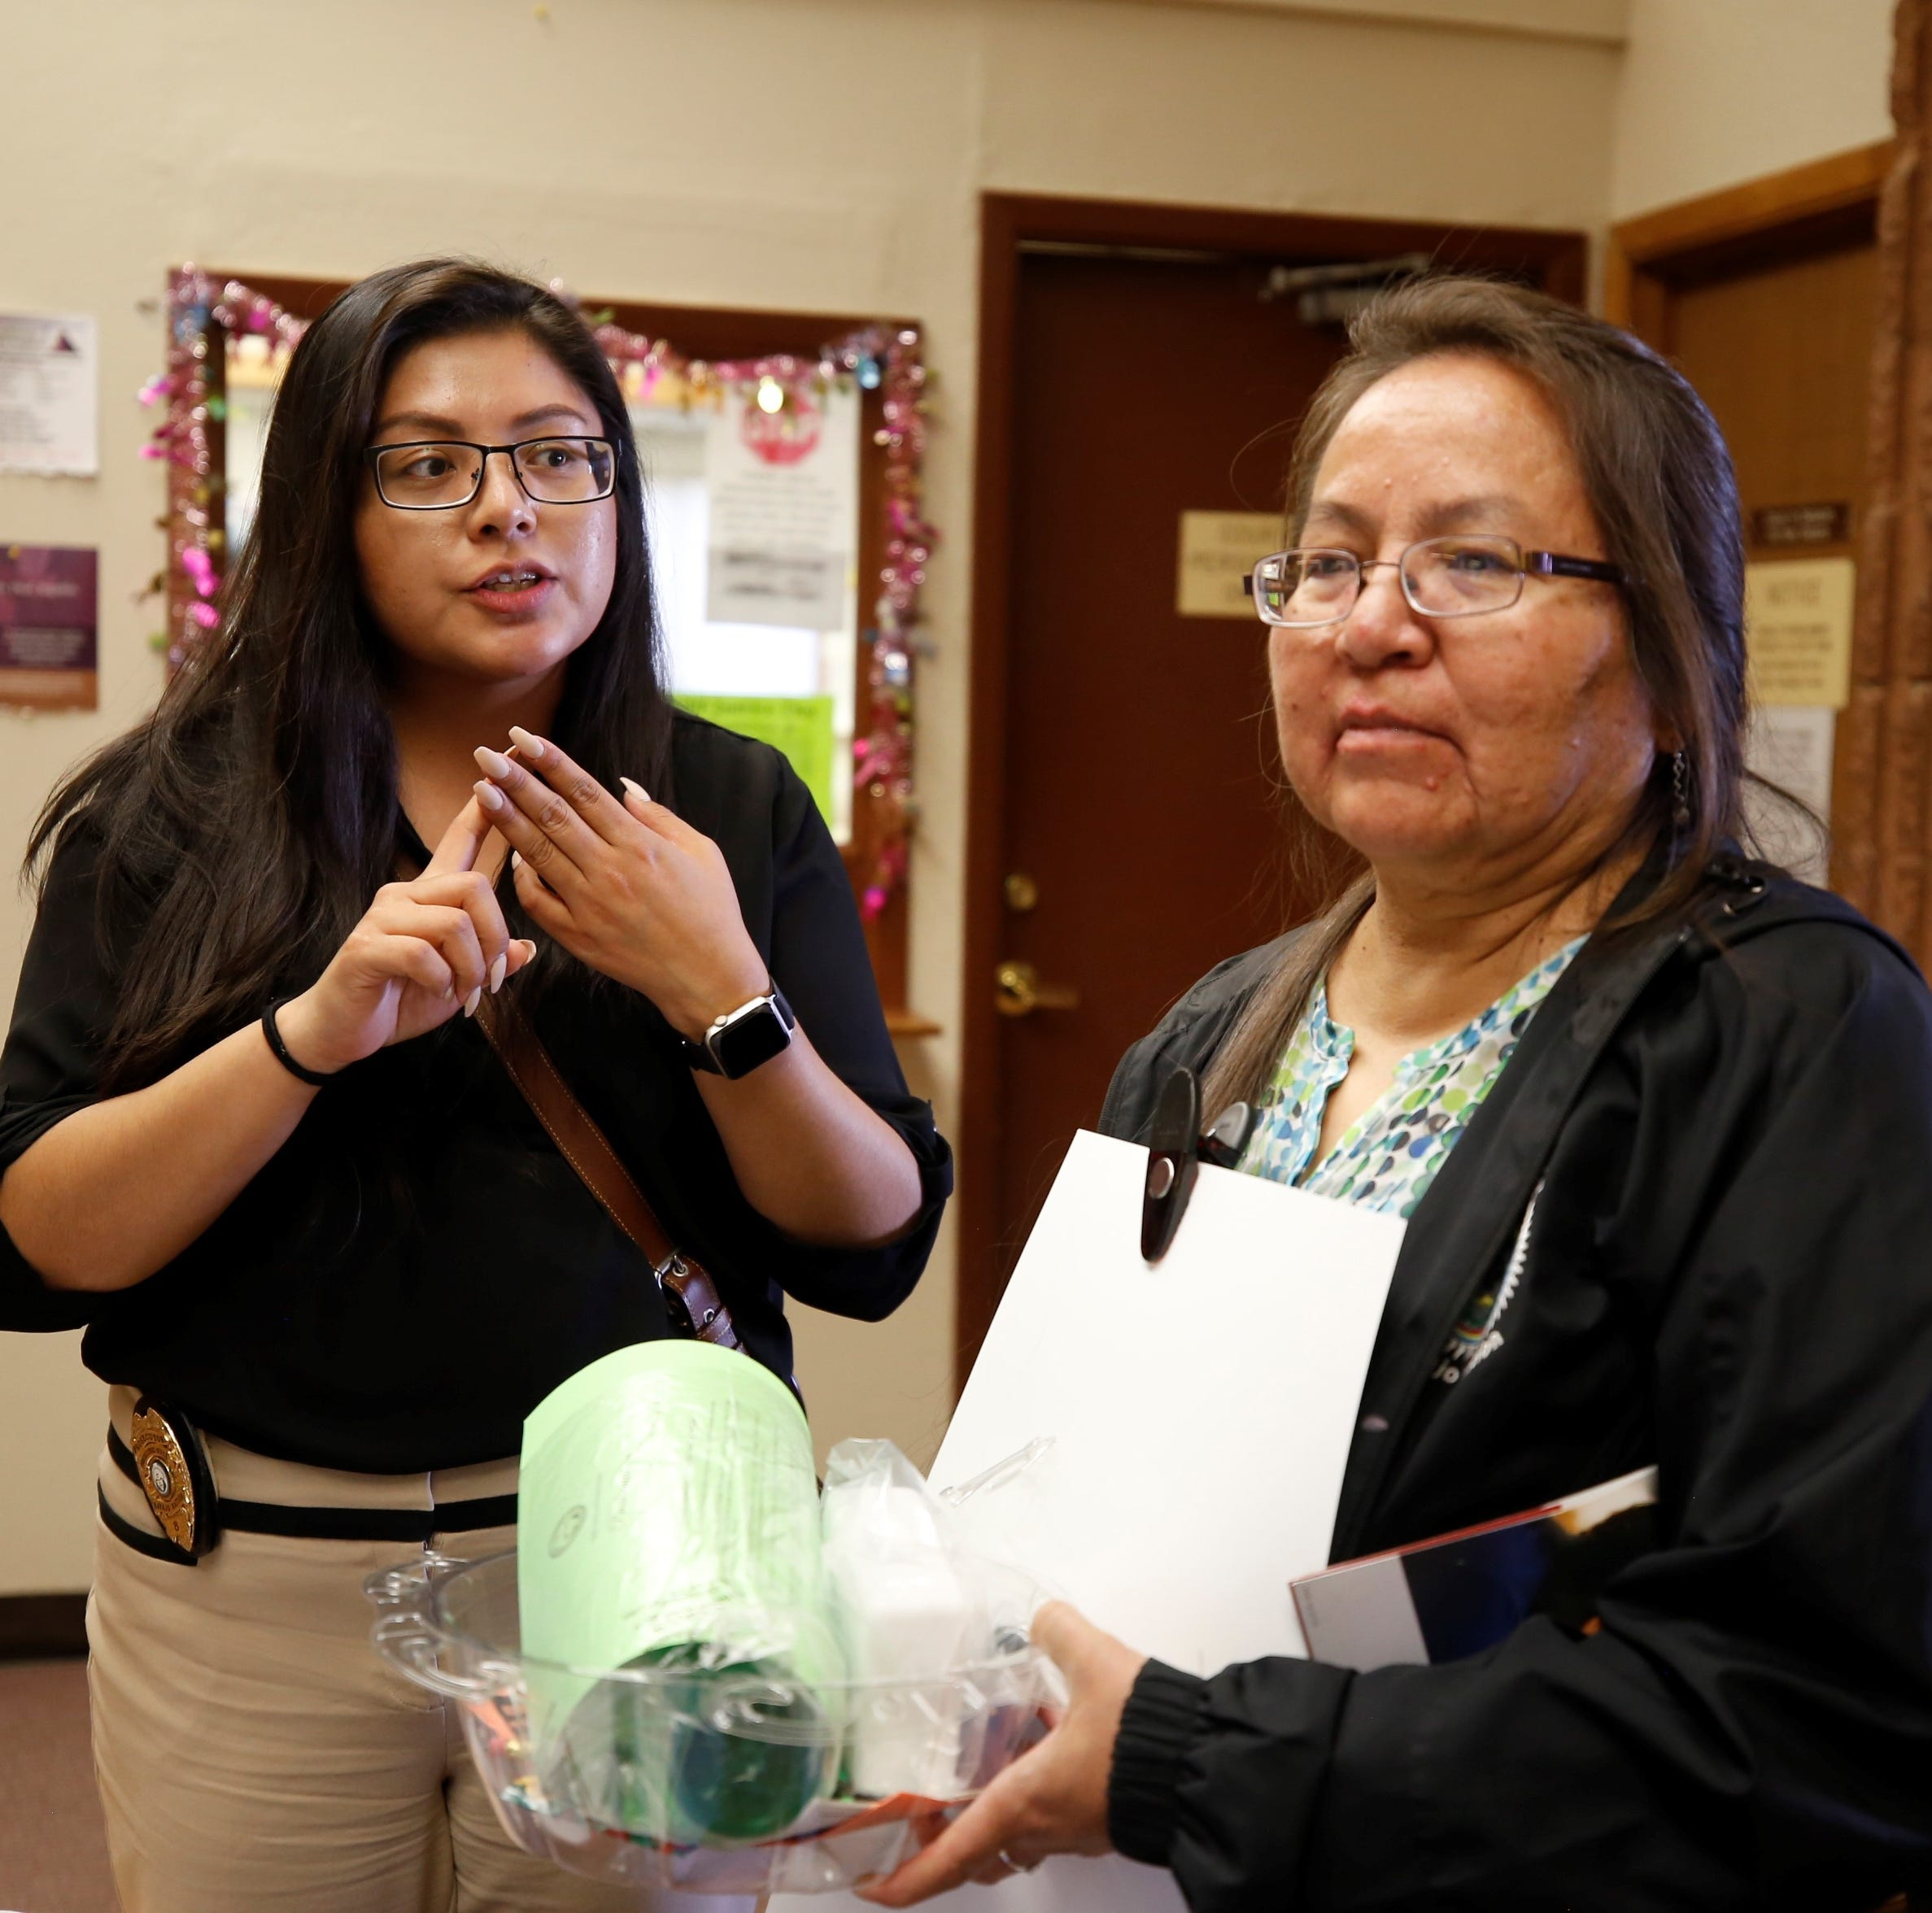 Justice Day in Shiprock celebrates Navajo Nation court system